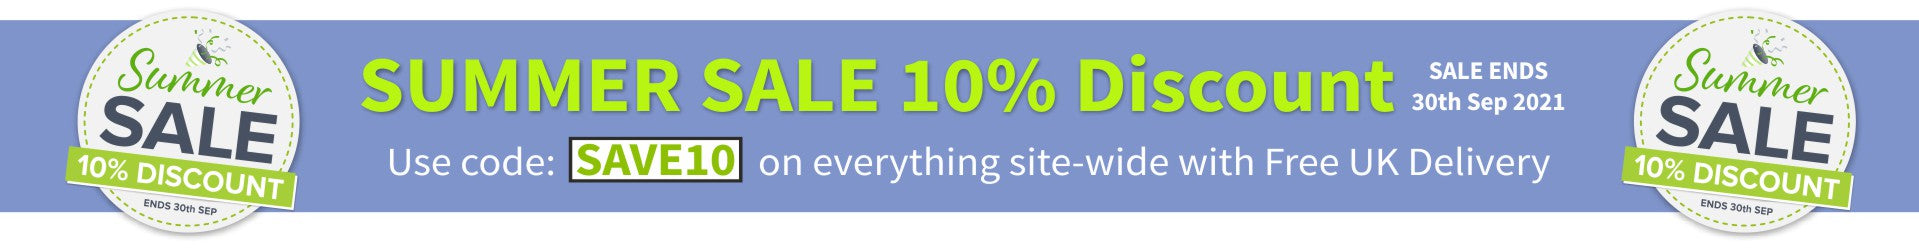 Summer sale now on